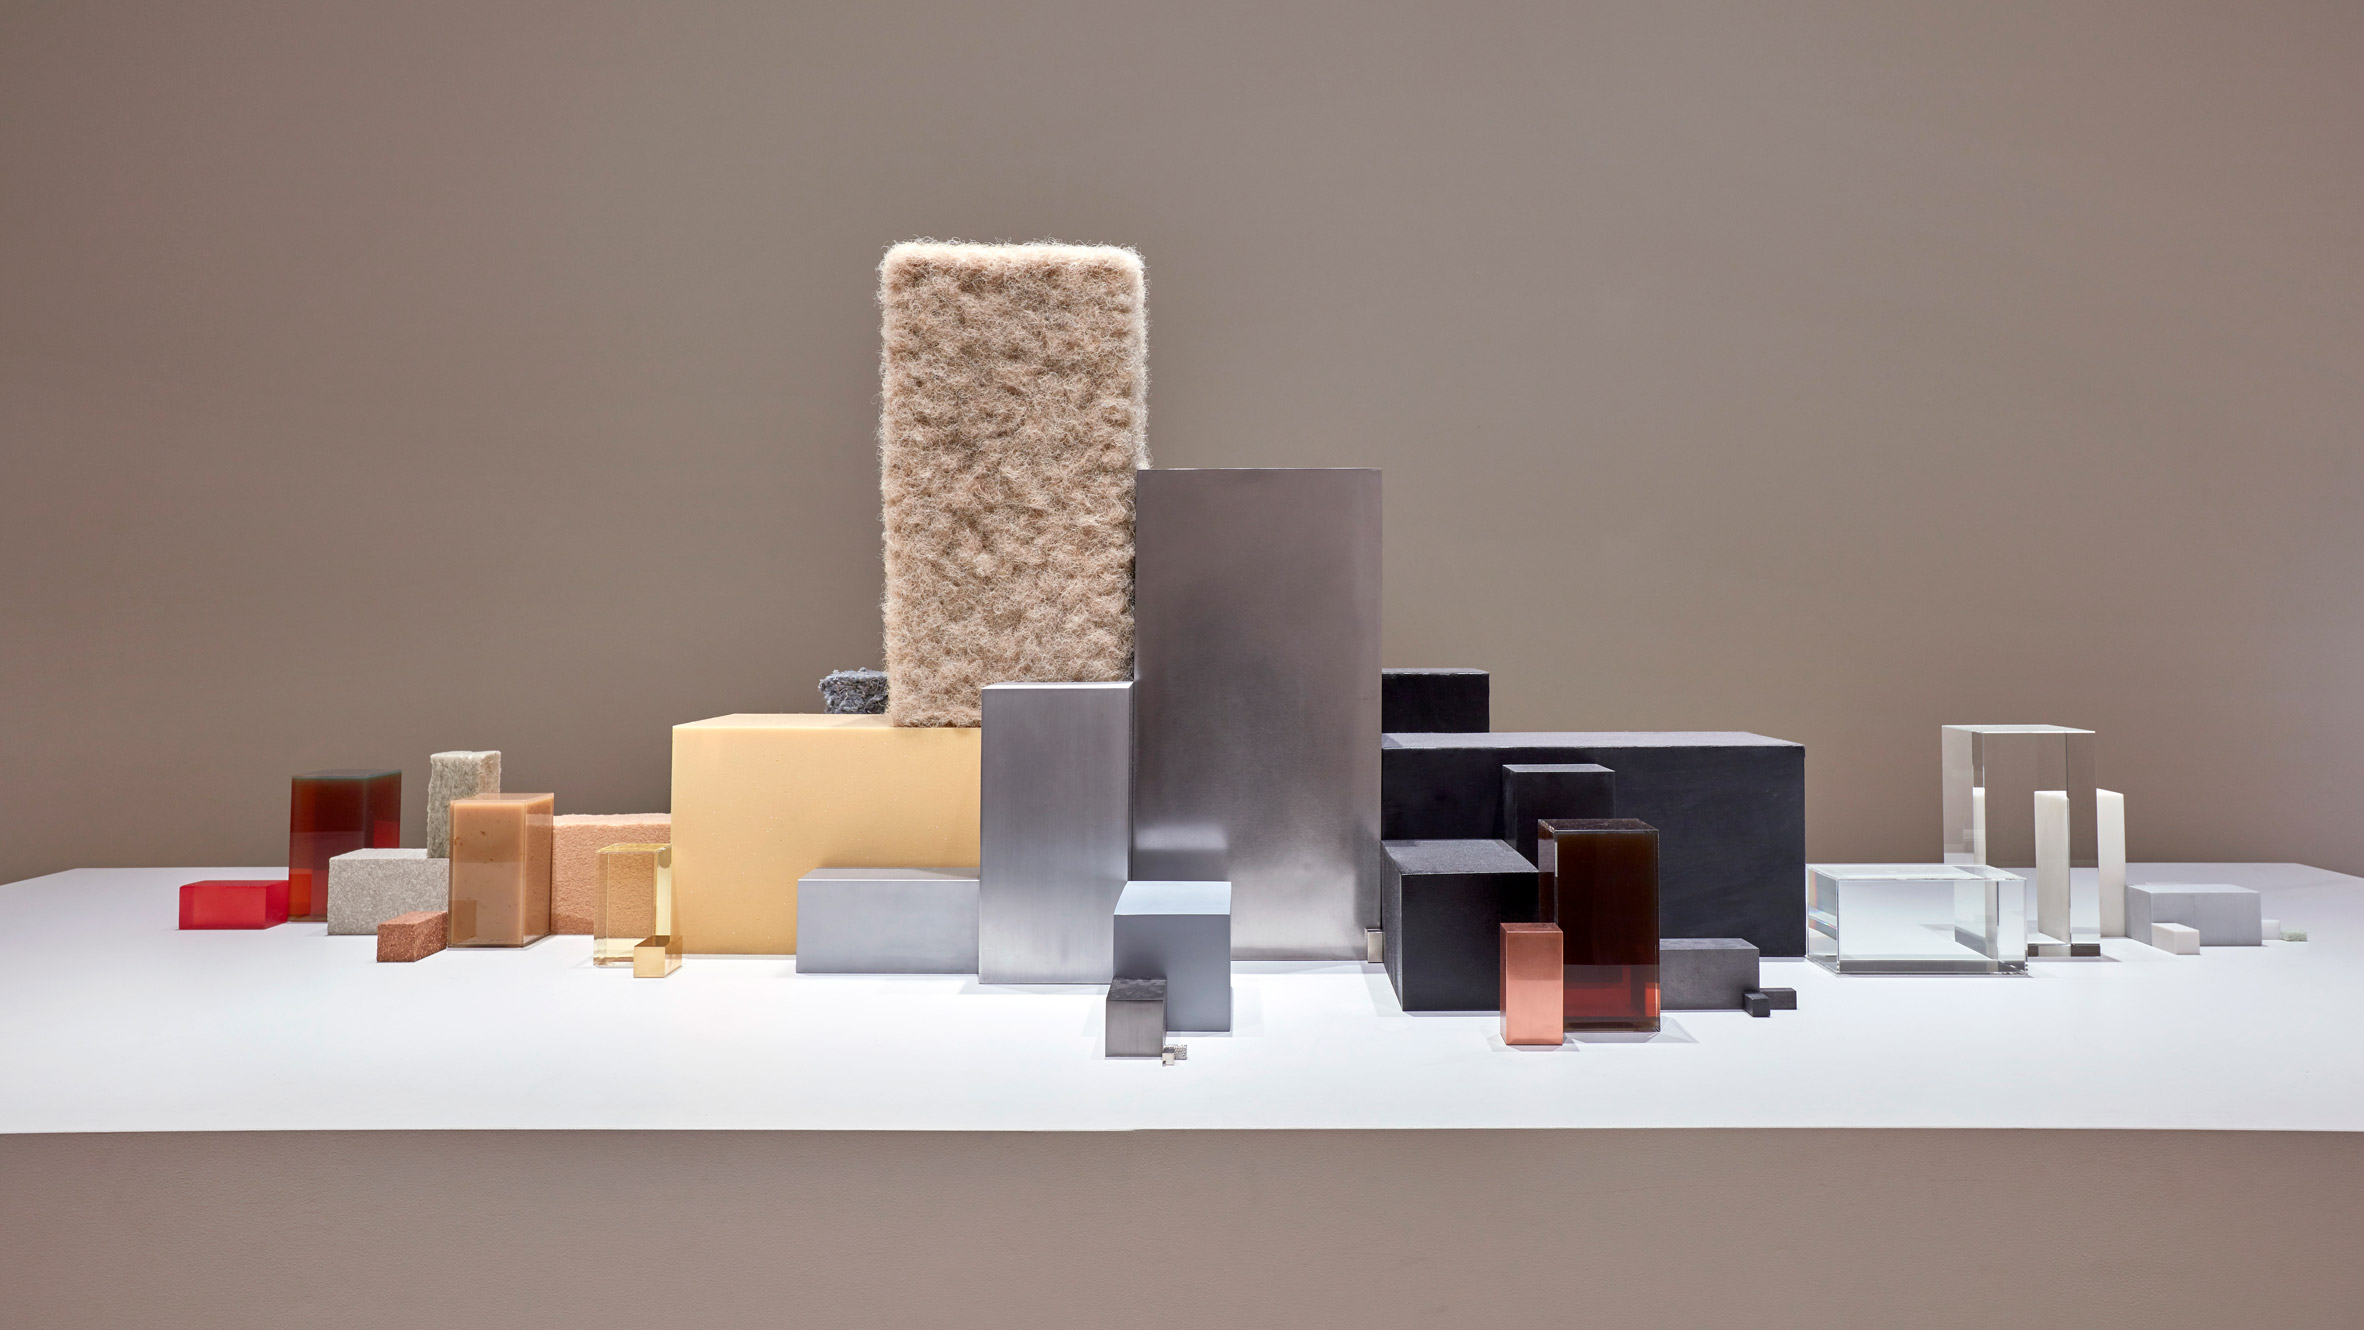 Materialism by Studio Drift